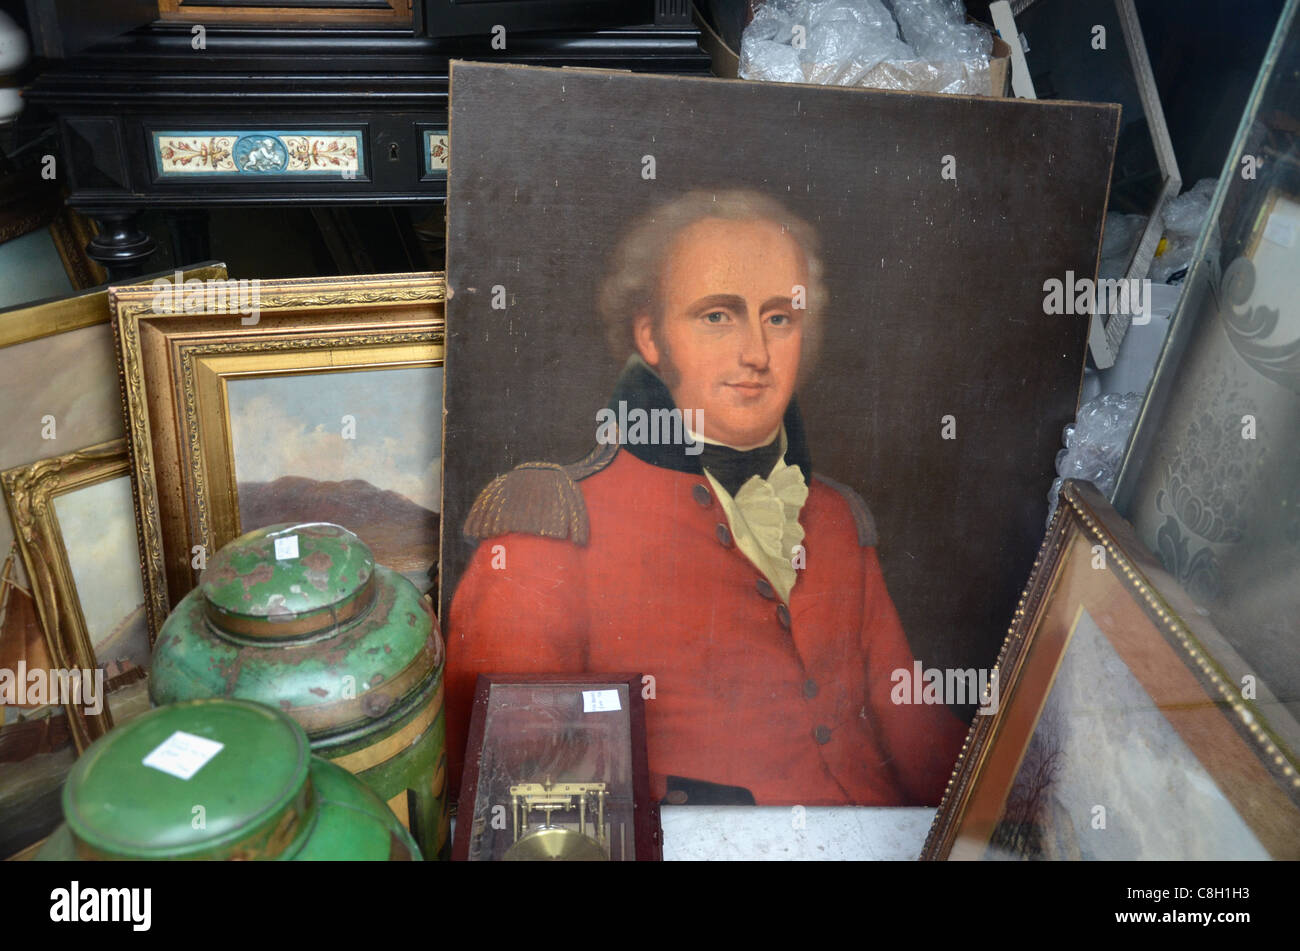 Paintings and bric-a-brac in the window of a junk shop in Edinburgh's New Town. - Stock Image